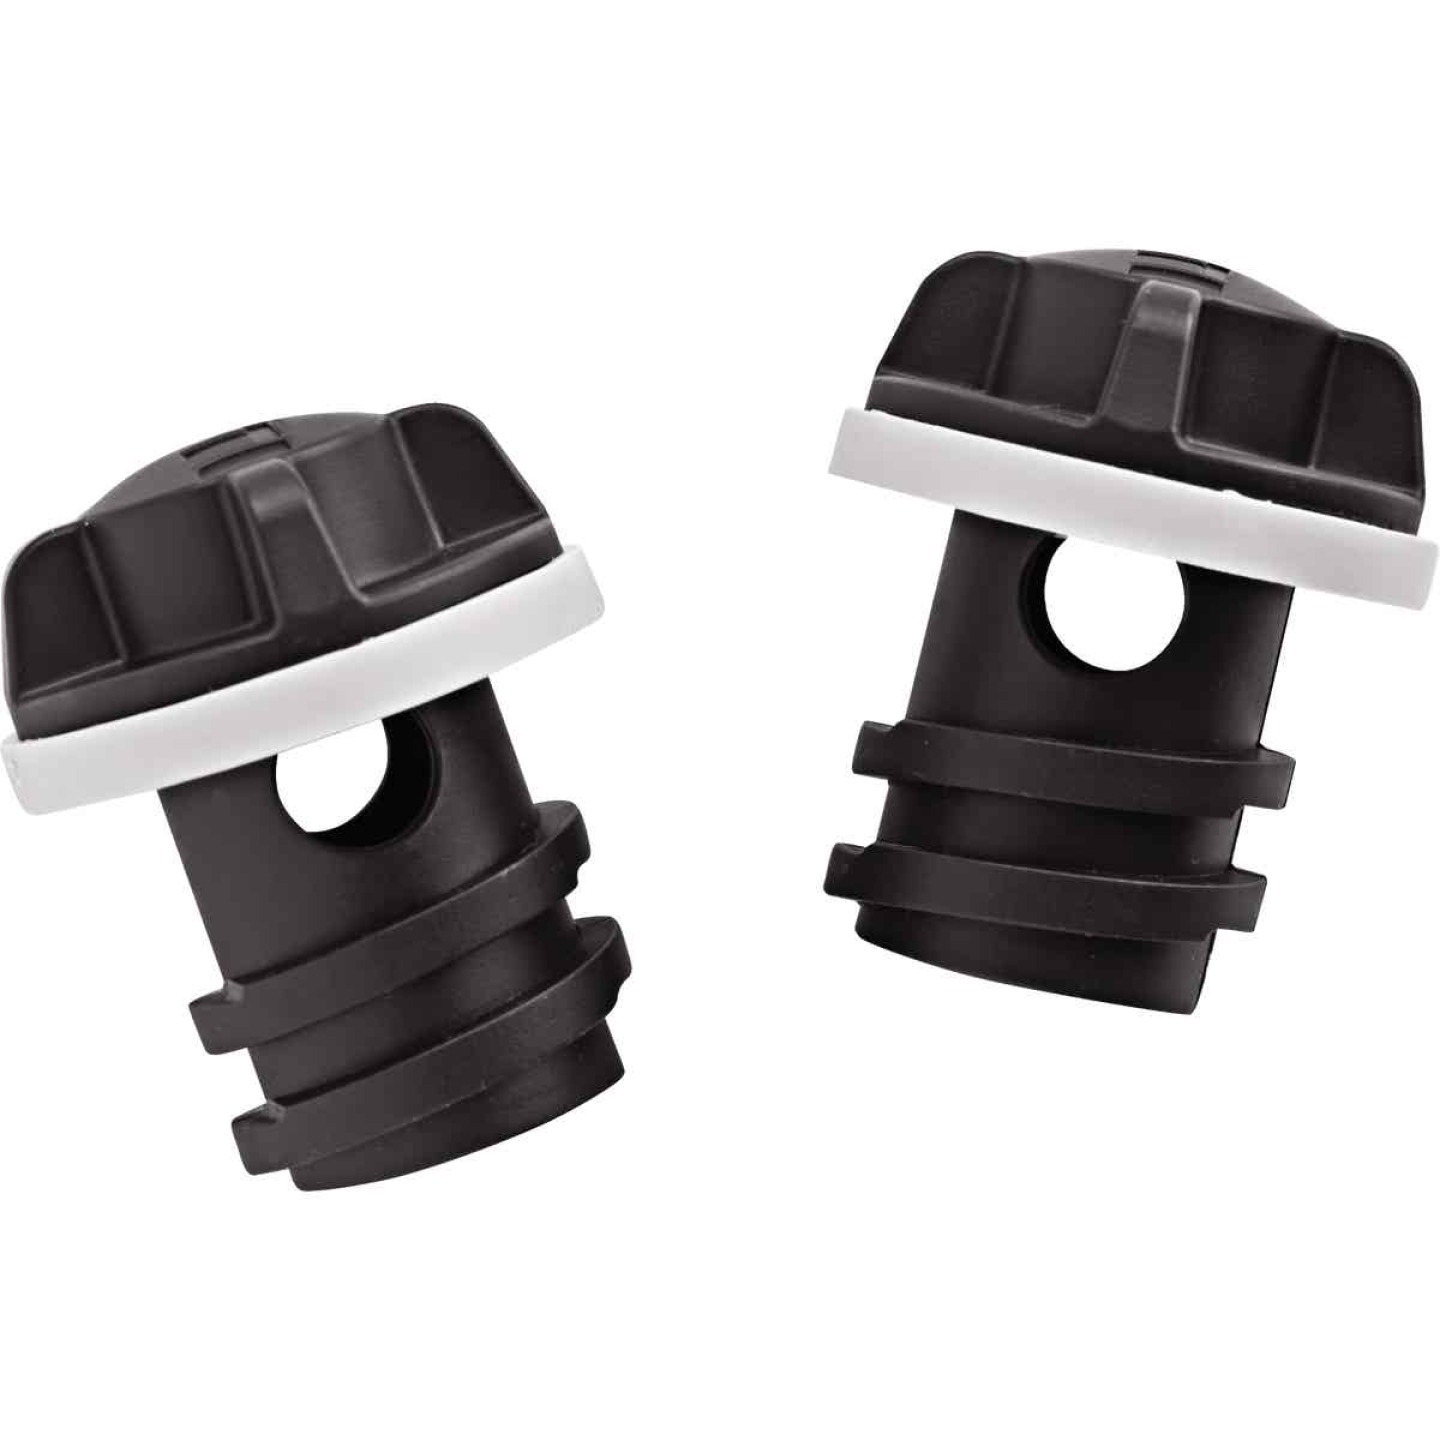 Yeti Vortex Screw-In Gasketed Drain Plug (2-Pack) Image 1